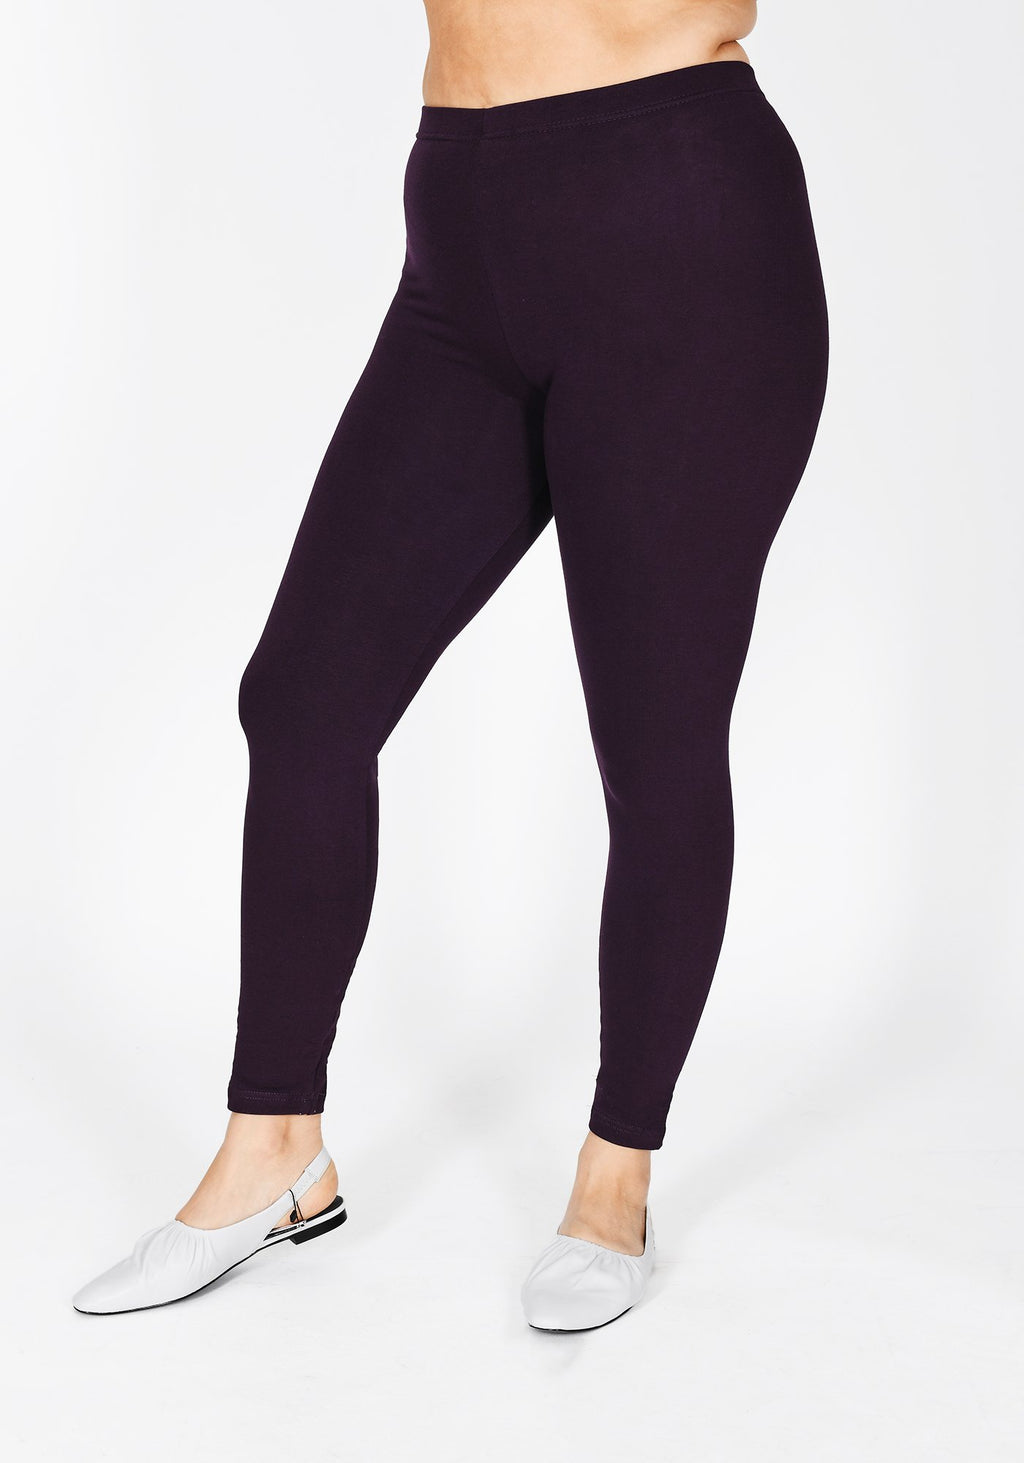 Classic Plus Size Acai Purple Leggings 1